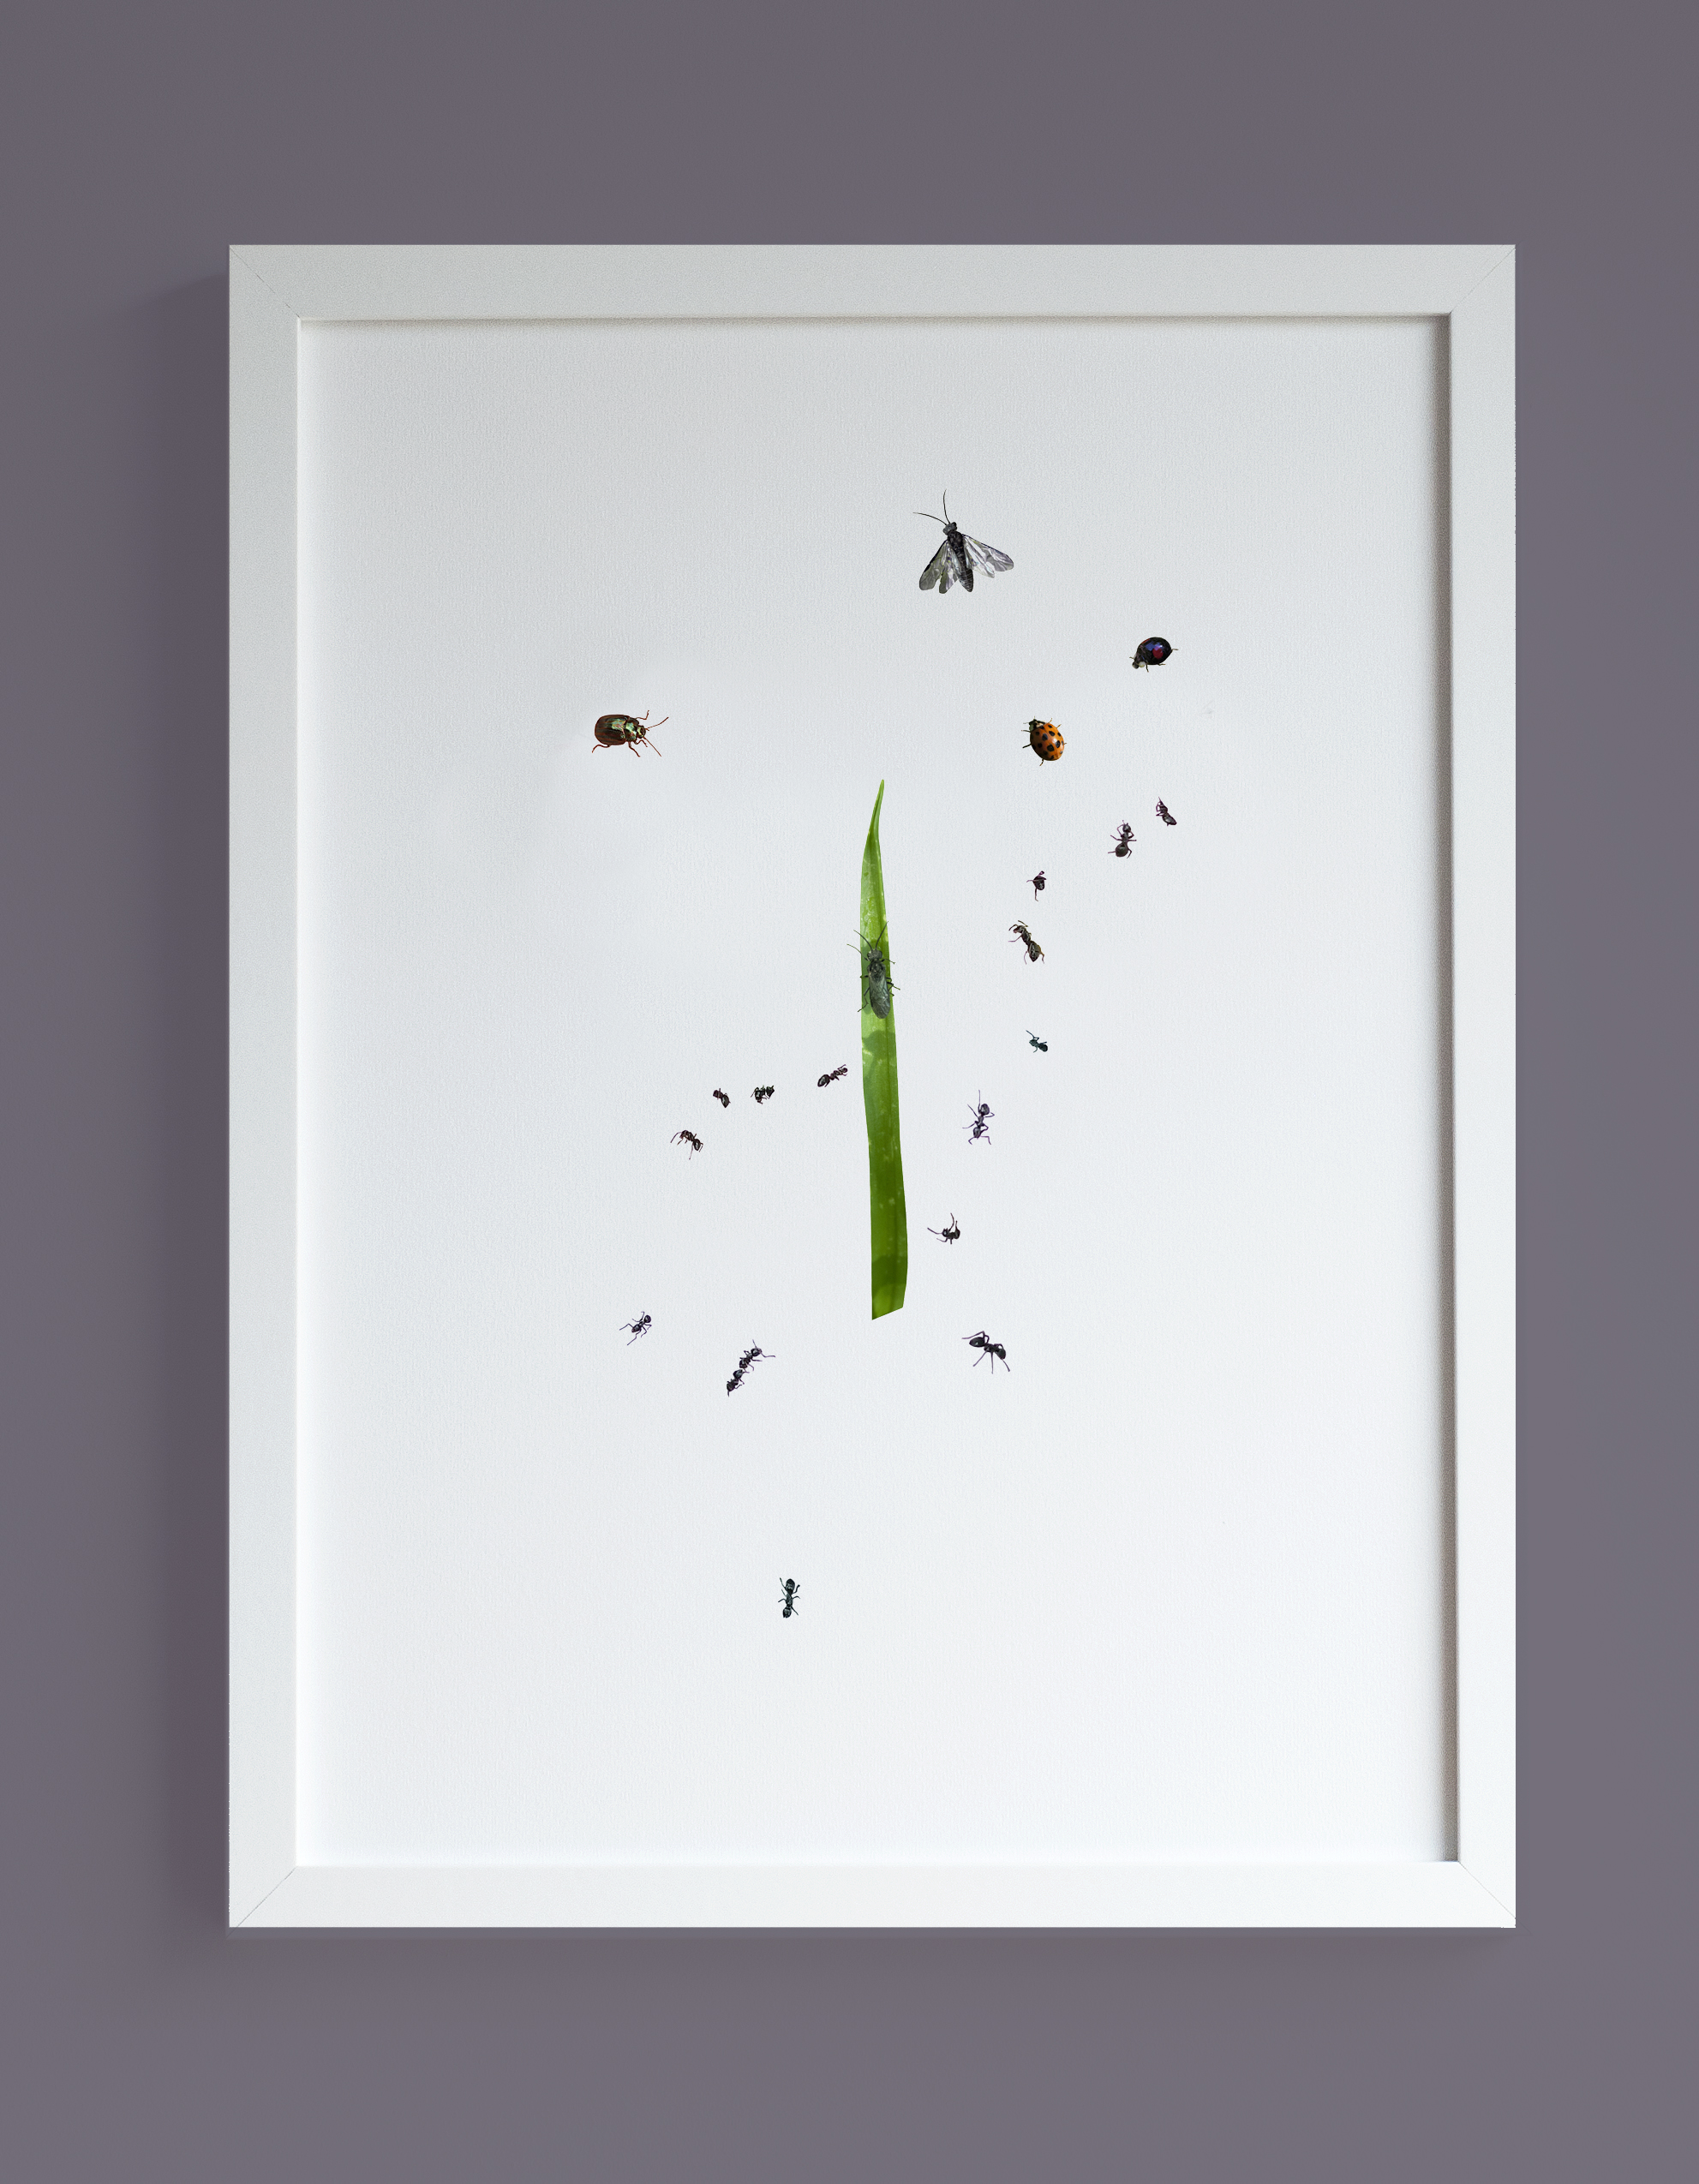 Image of framed print insects and a blade of grass